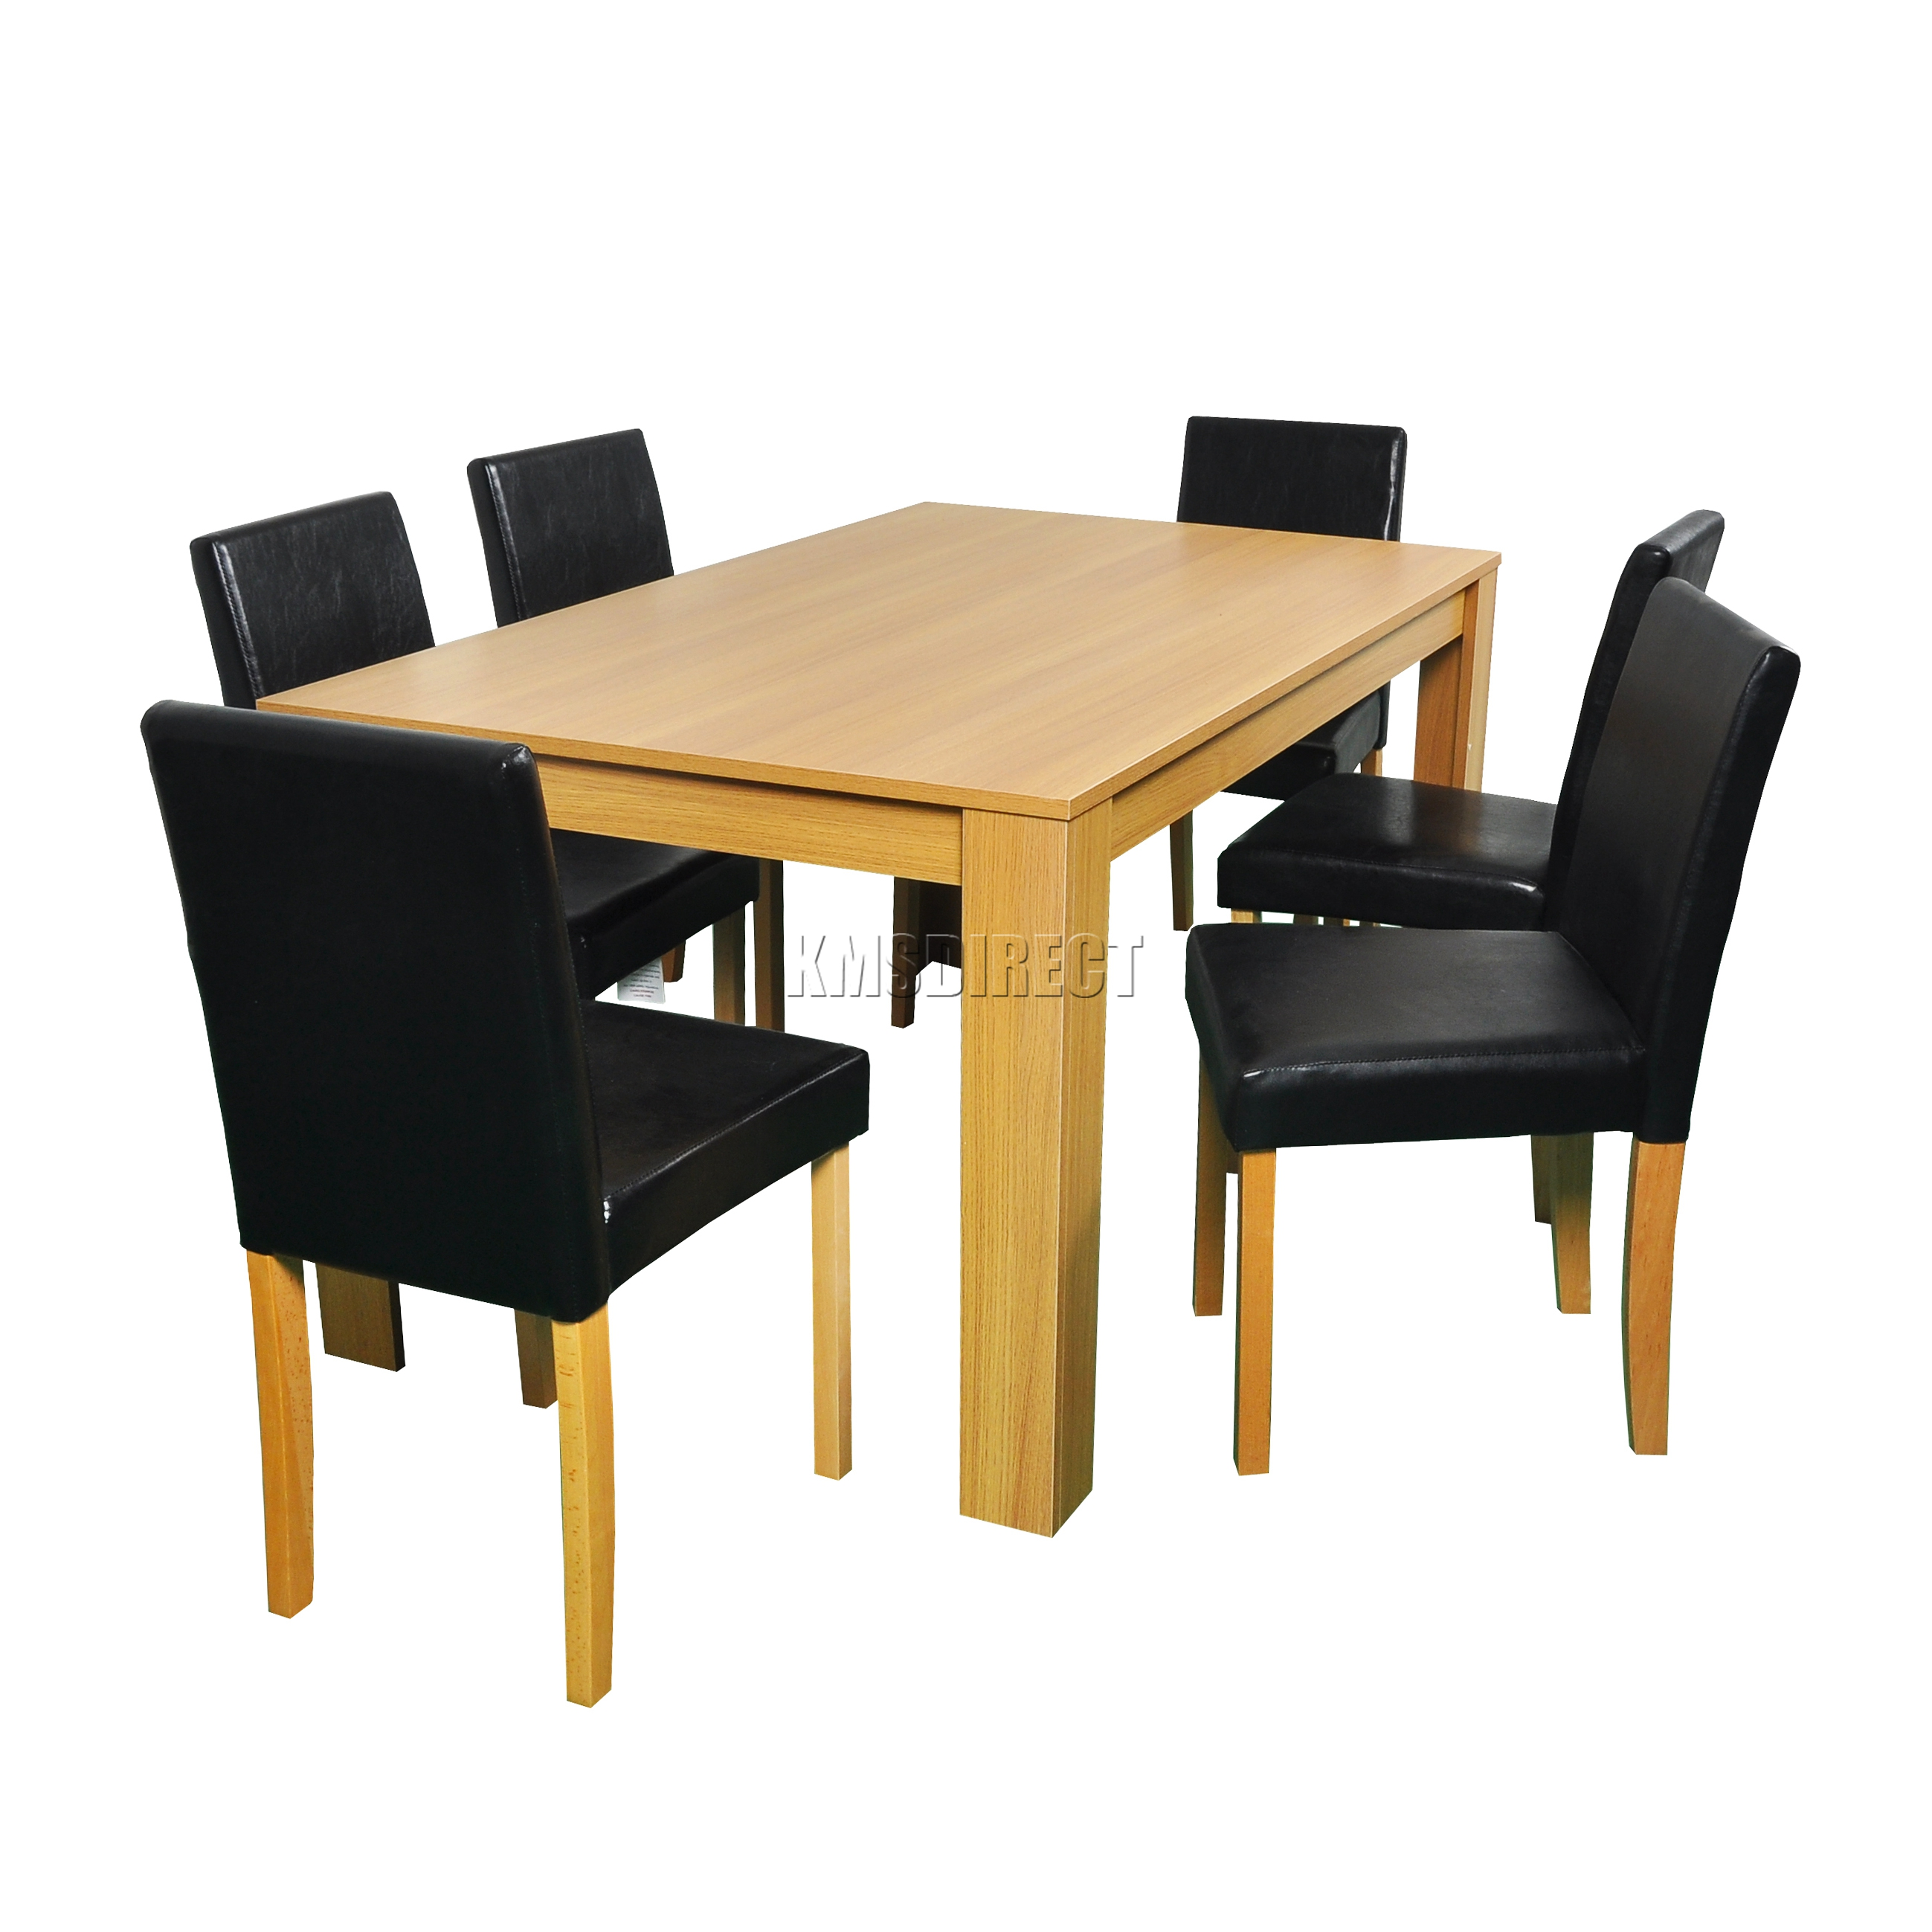 WestWood Wooden Dining Table And 4 Or 6 PU Faux Leather